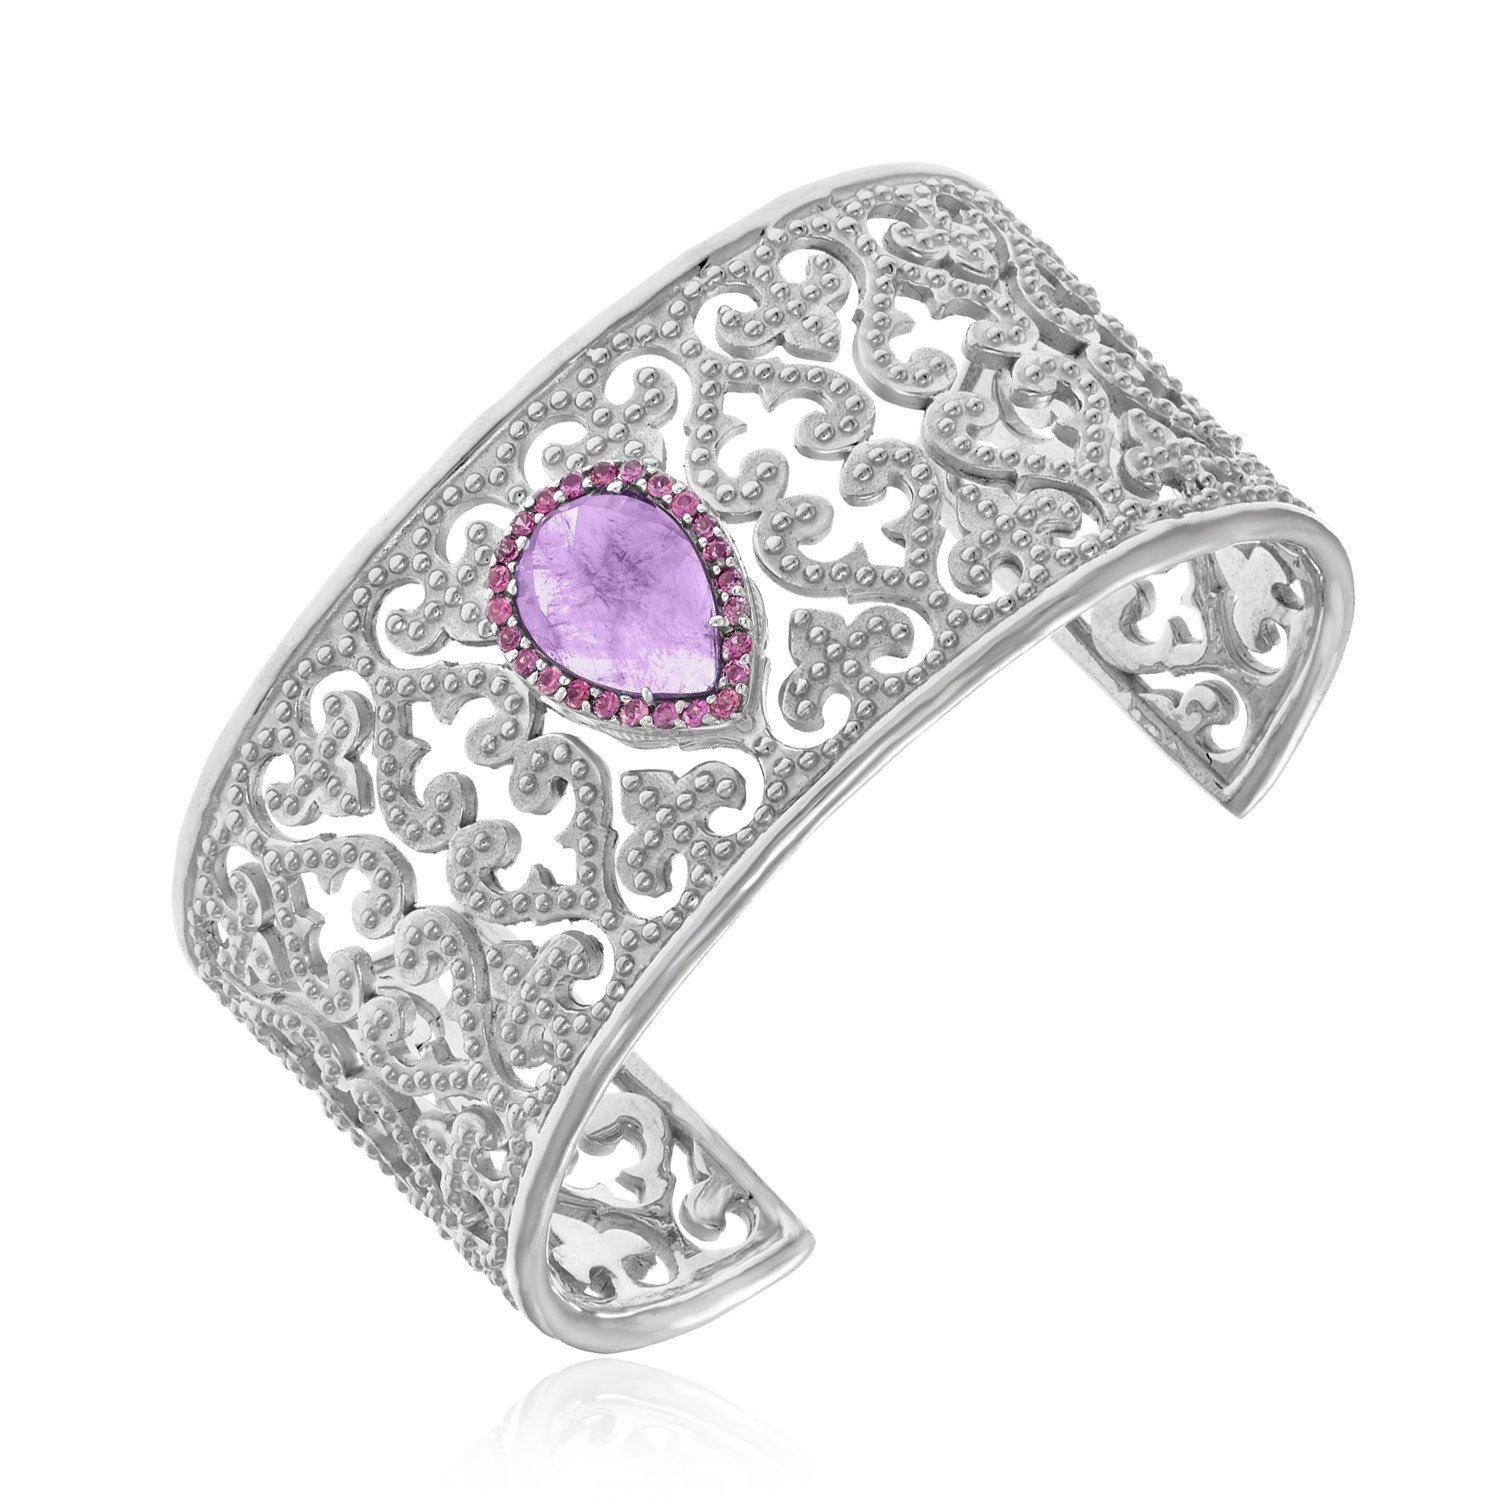 Womens Sterling Silver Byzantine Style Cuff with Amethyst and Pink Sapphires